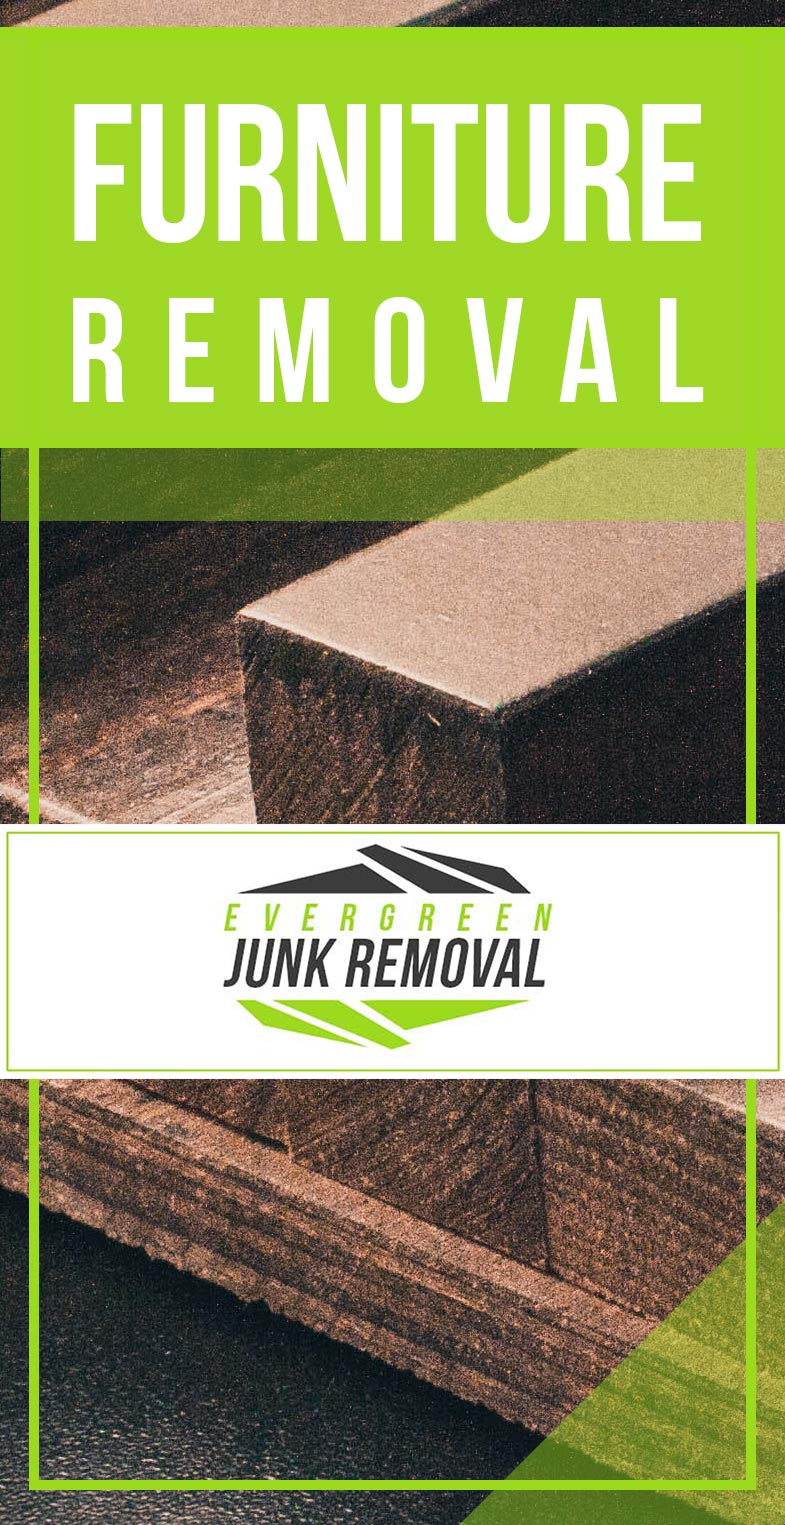 Hempstead Furniture Removal